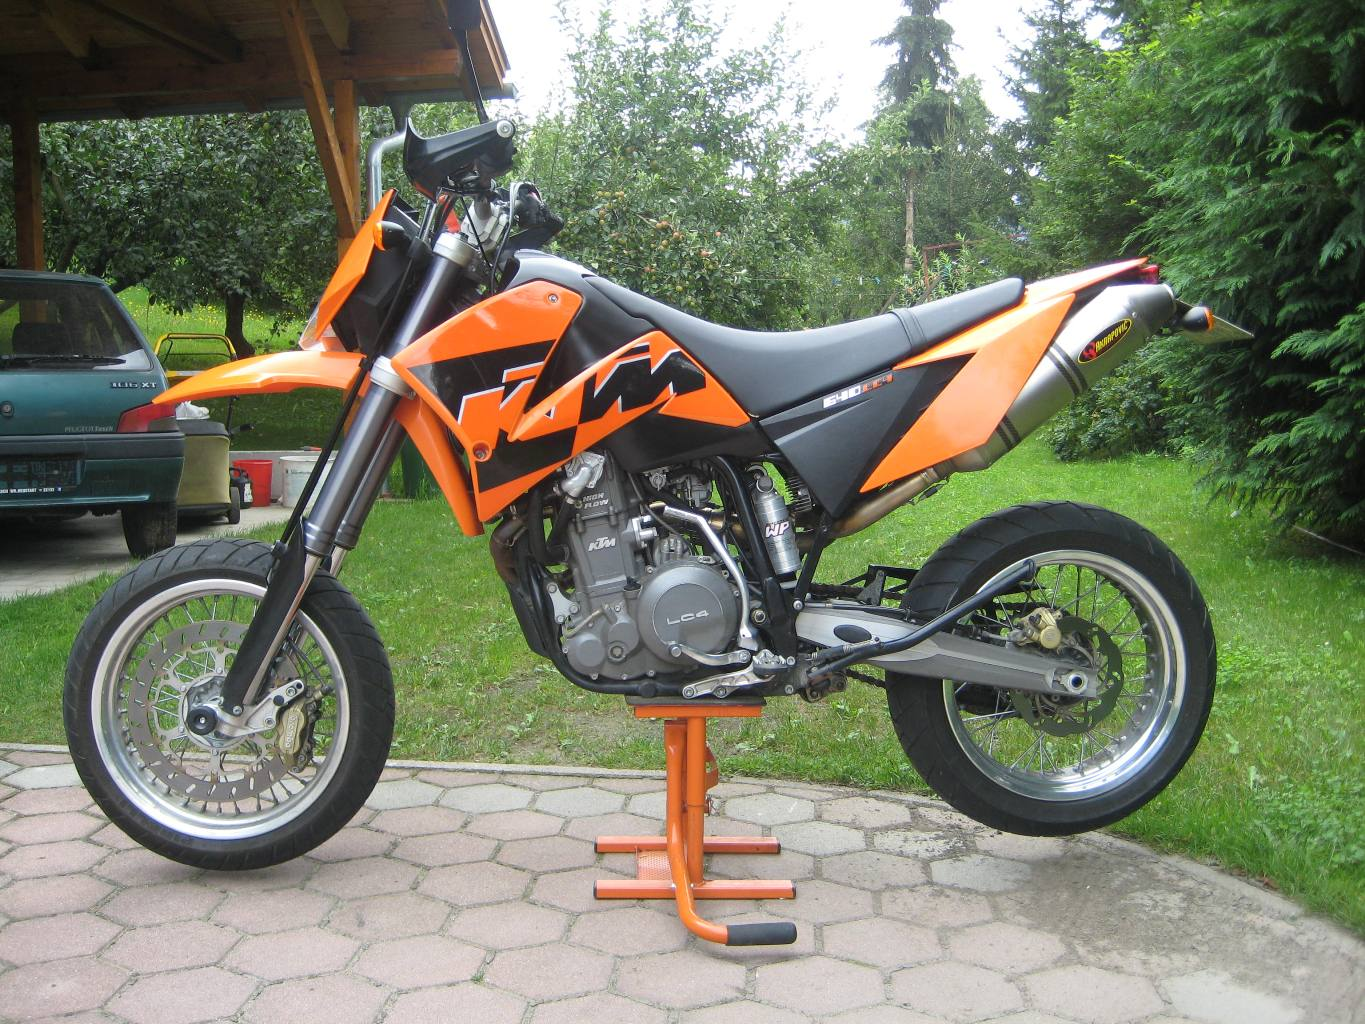 2006 ktm 640 lc4 supermoto orange moto zombdrive com. Black Bedroom Furniture Sets. Home Design Ideas